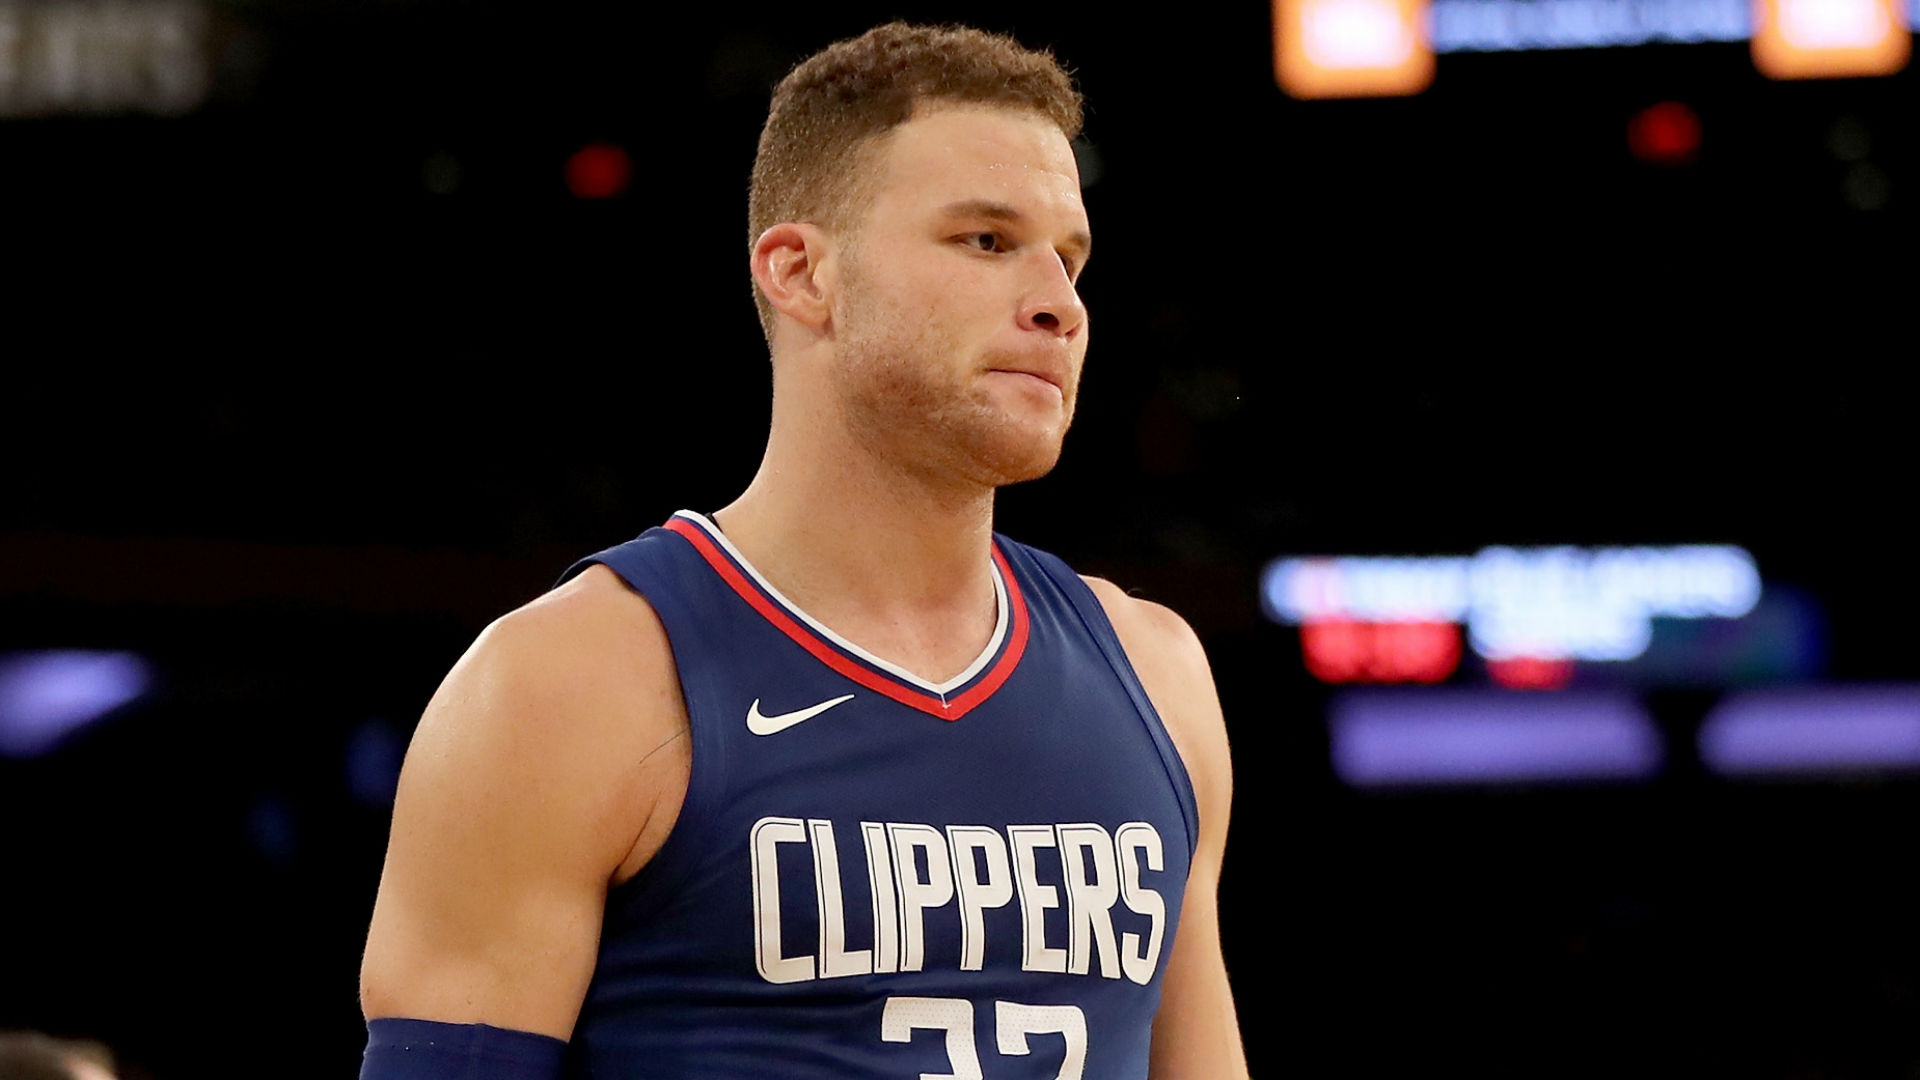 Blake Griffin injury update: Clippers forward suffers scary concussion